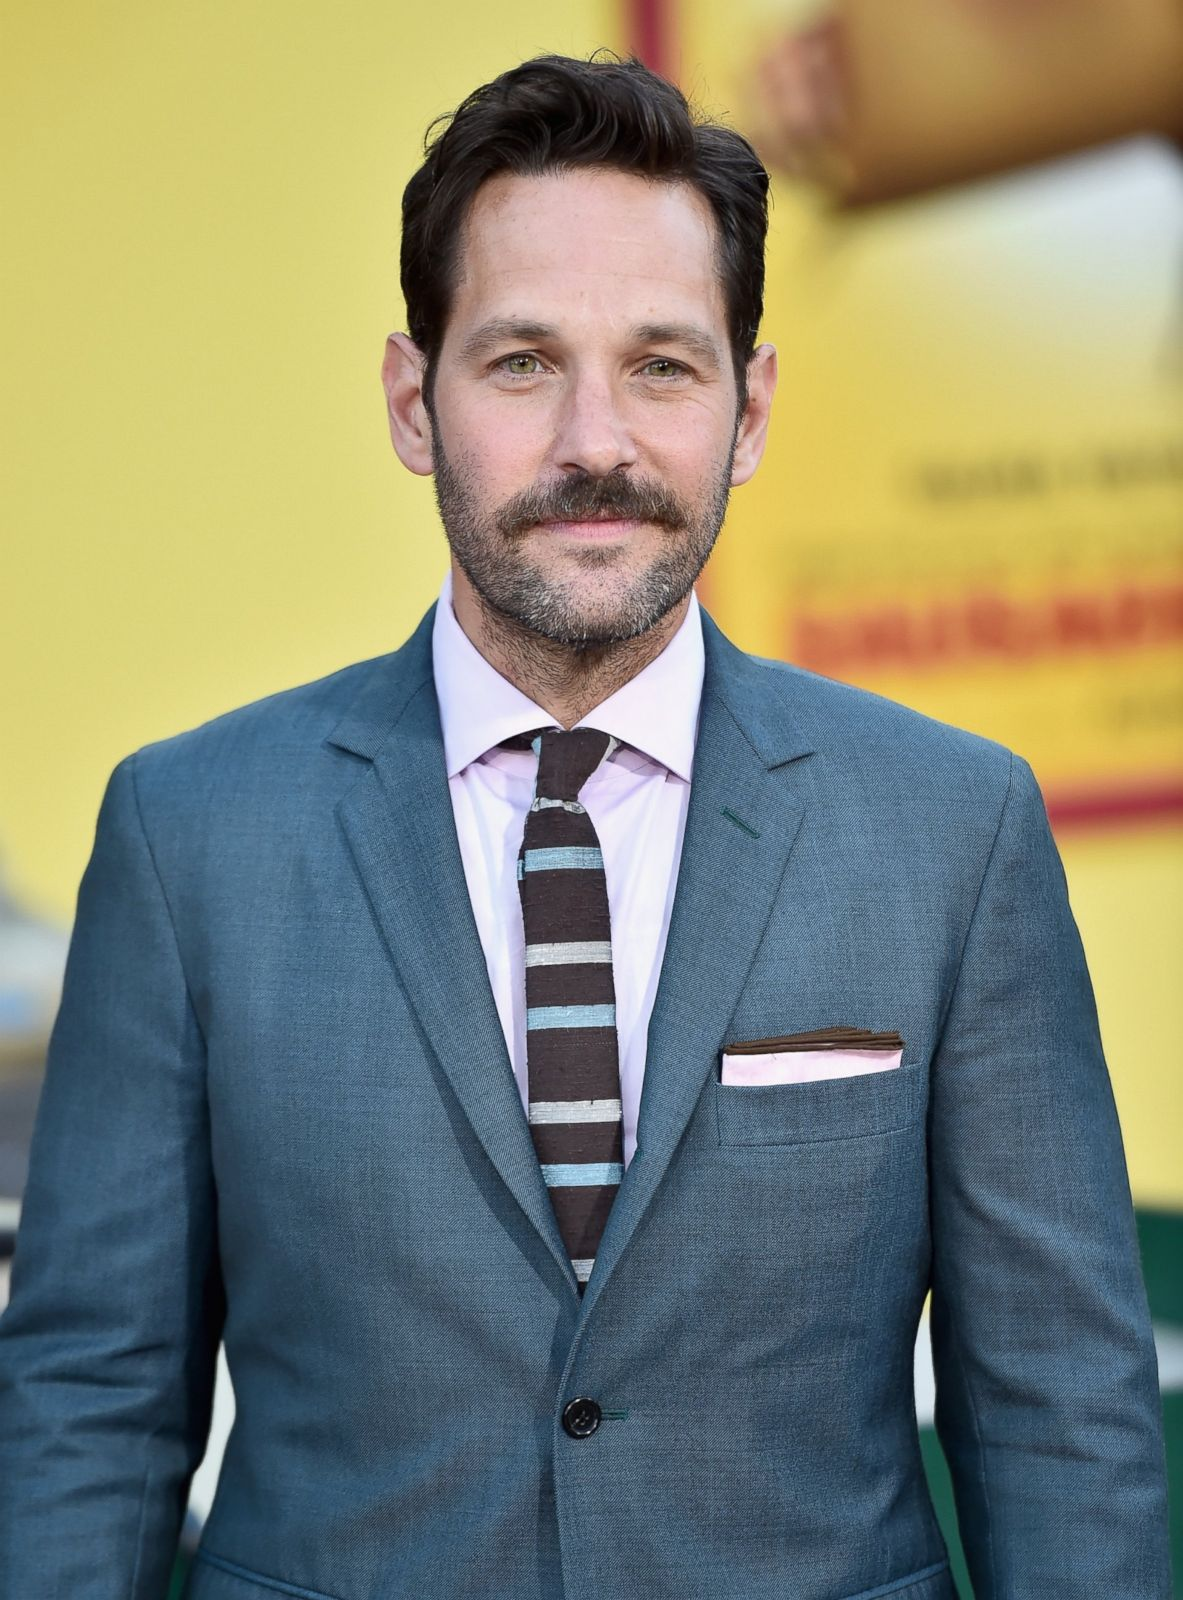 Paul Rudd Picture | August's Top Celebrity Pictures - ABC News